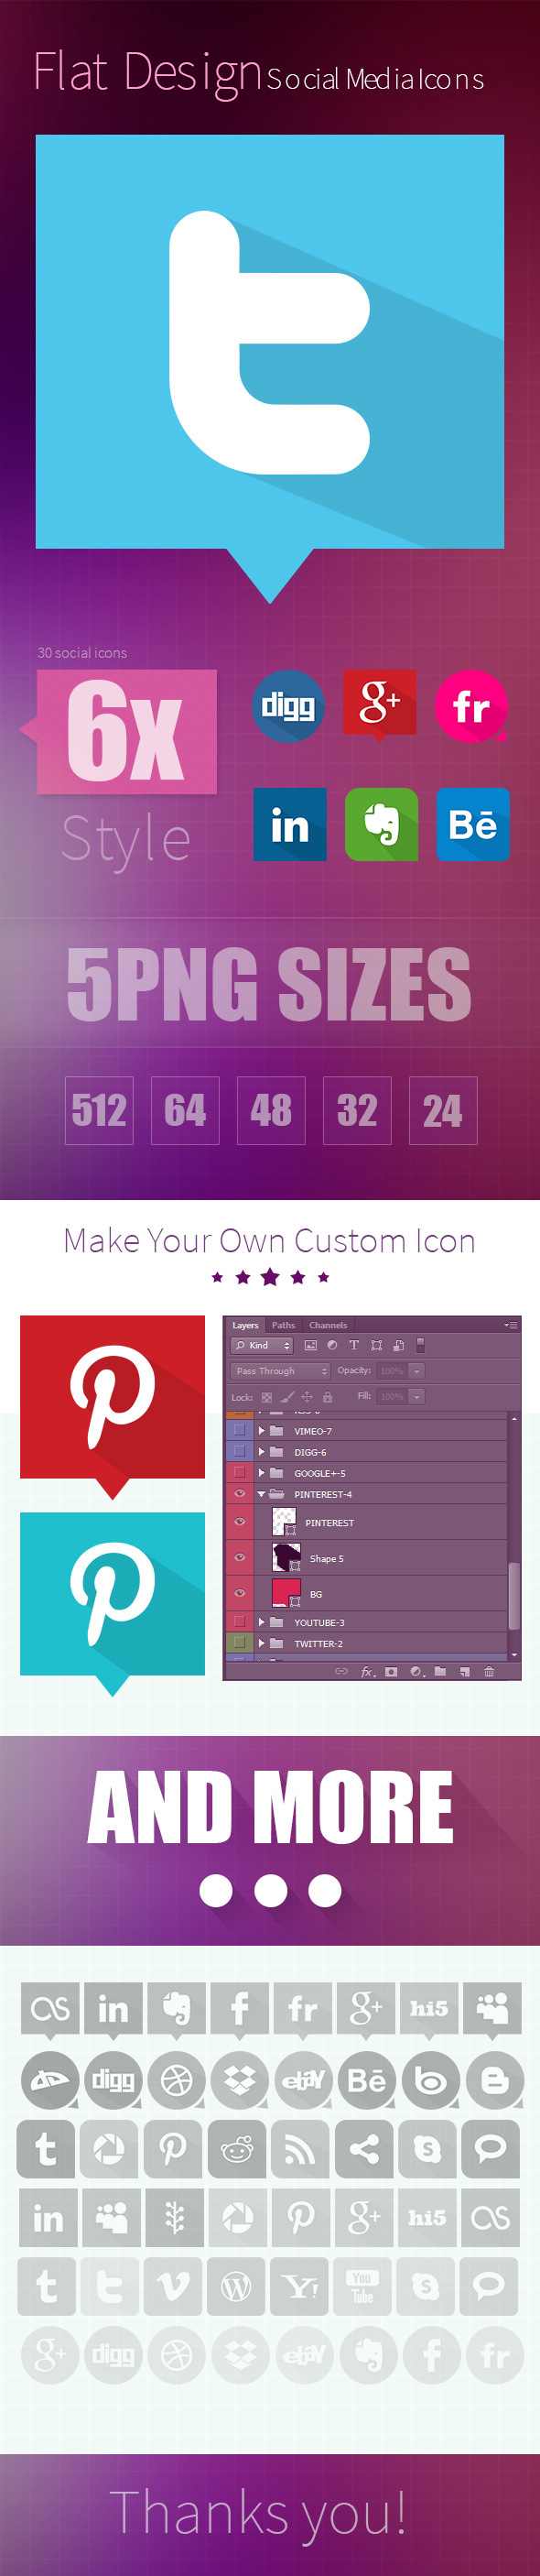 30x6style Flat Social icon